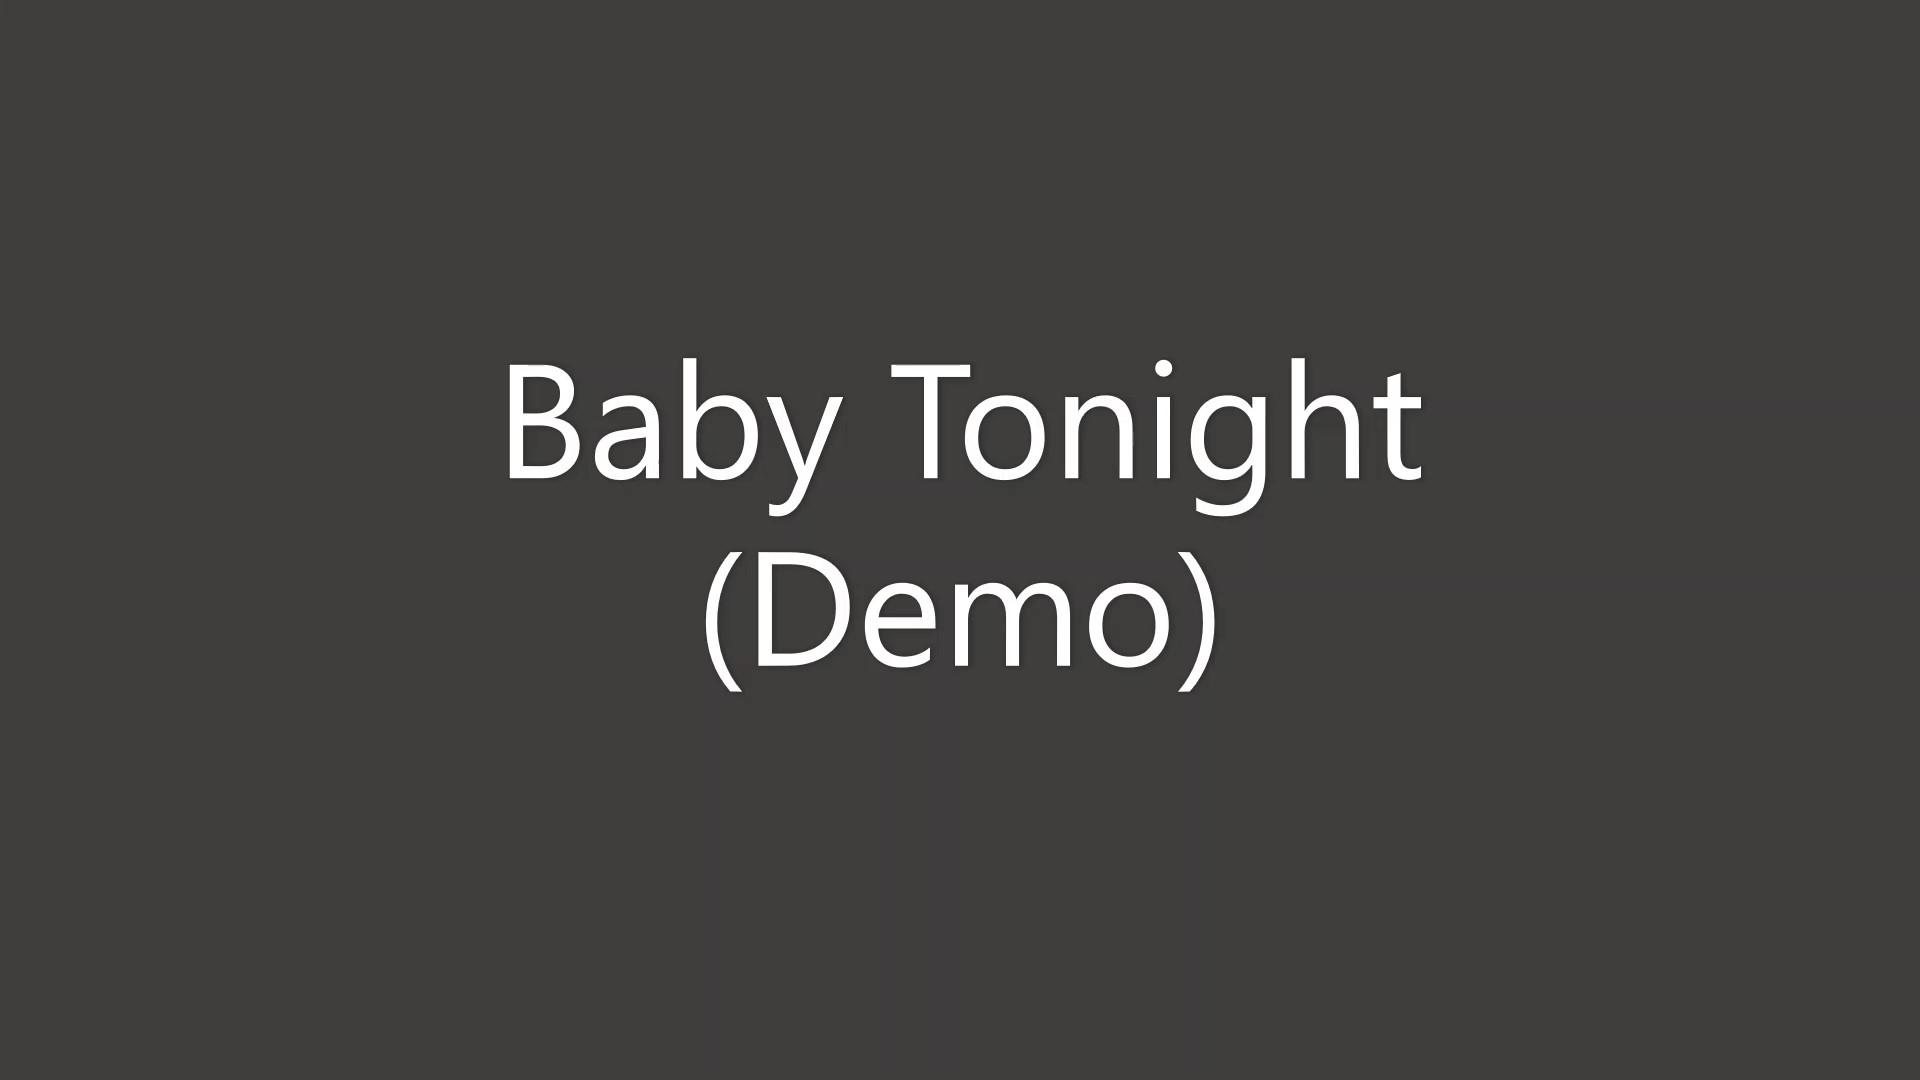 Baby Tonight Demo